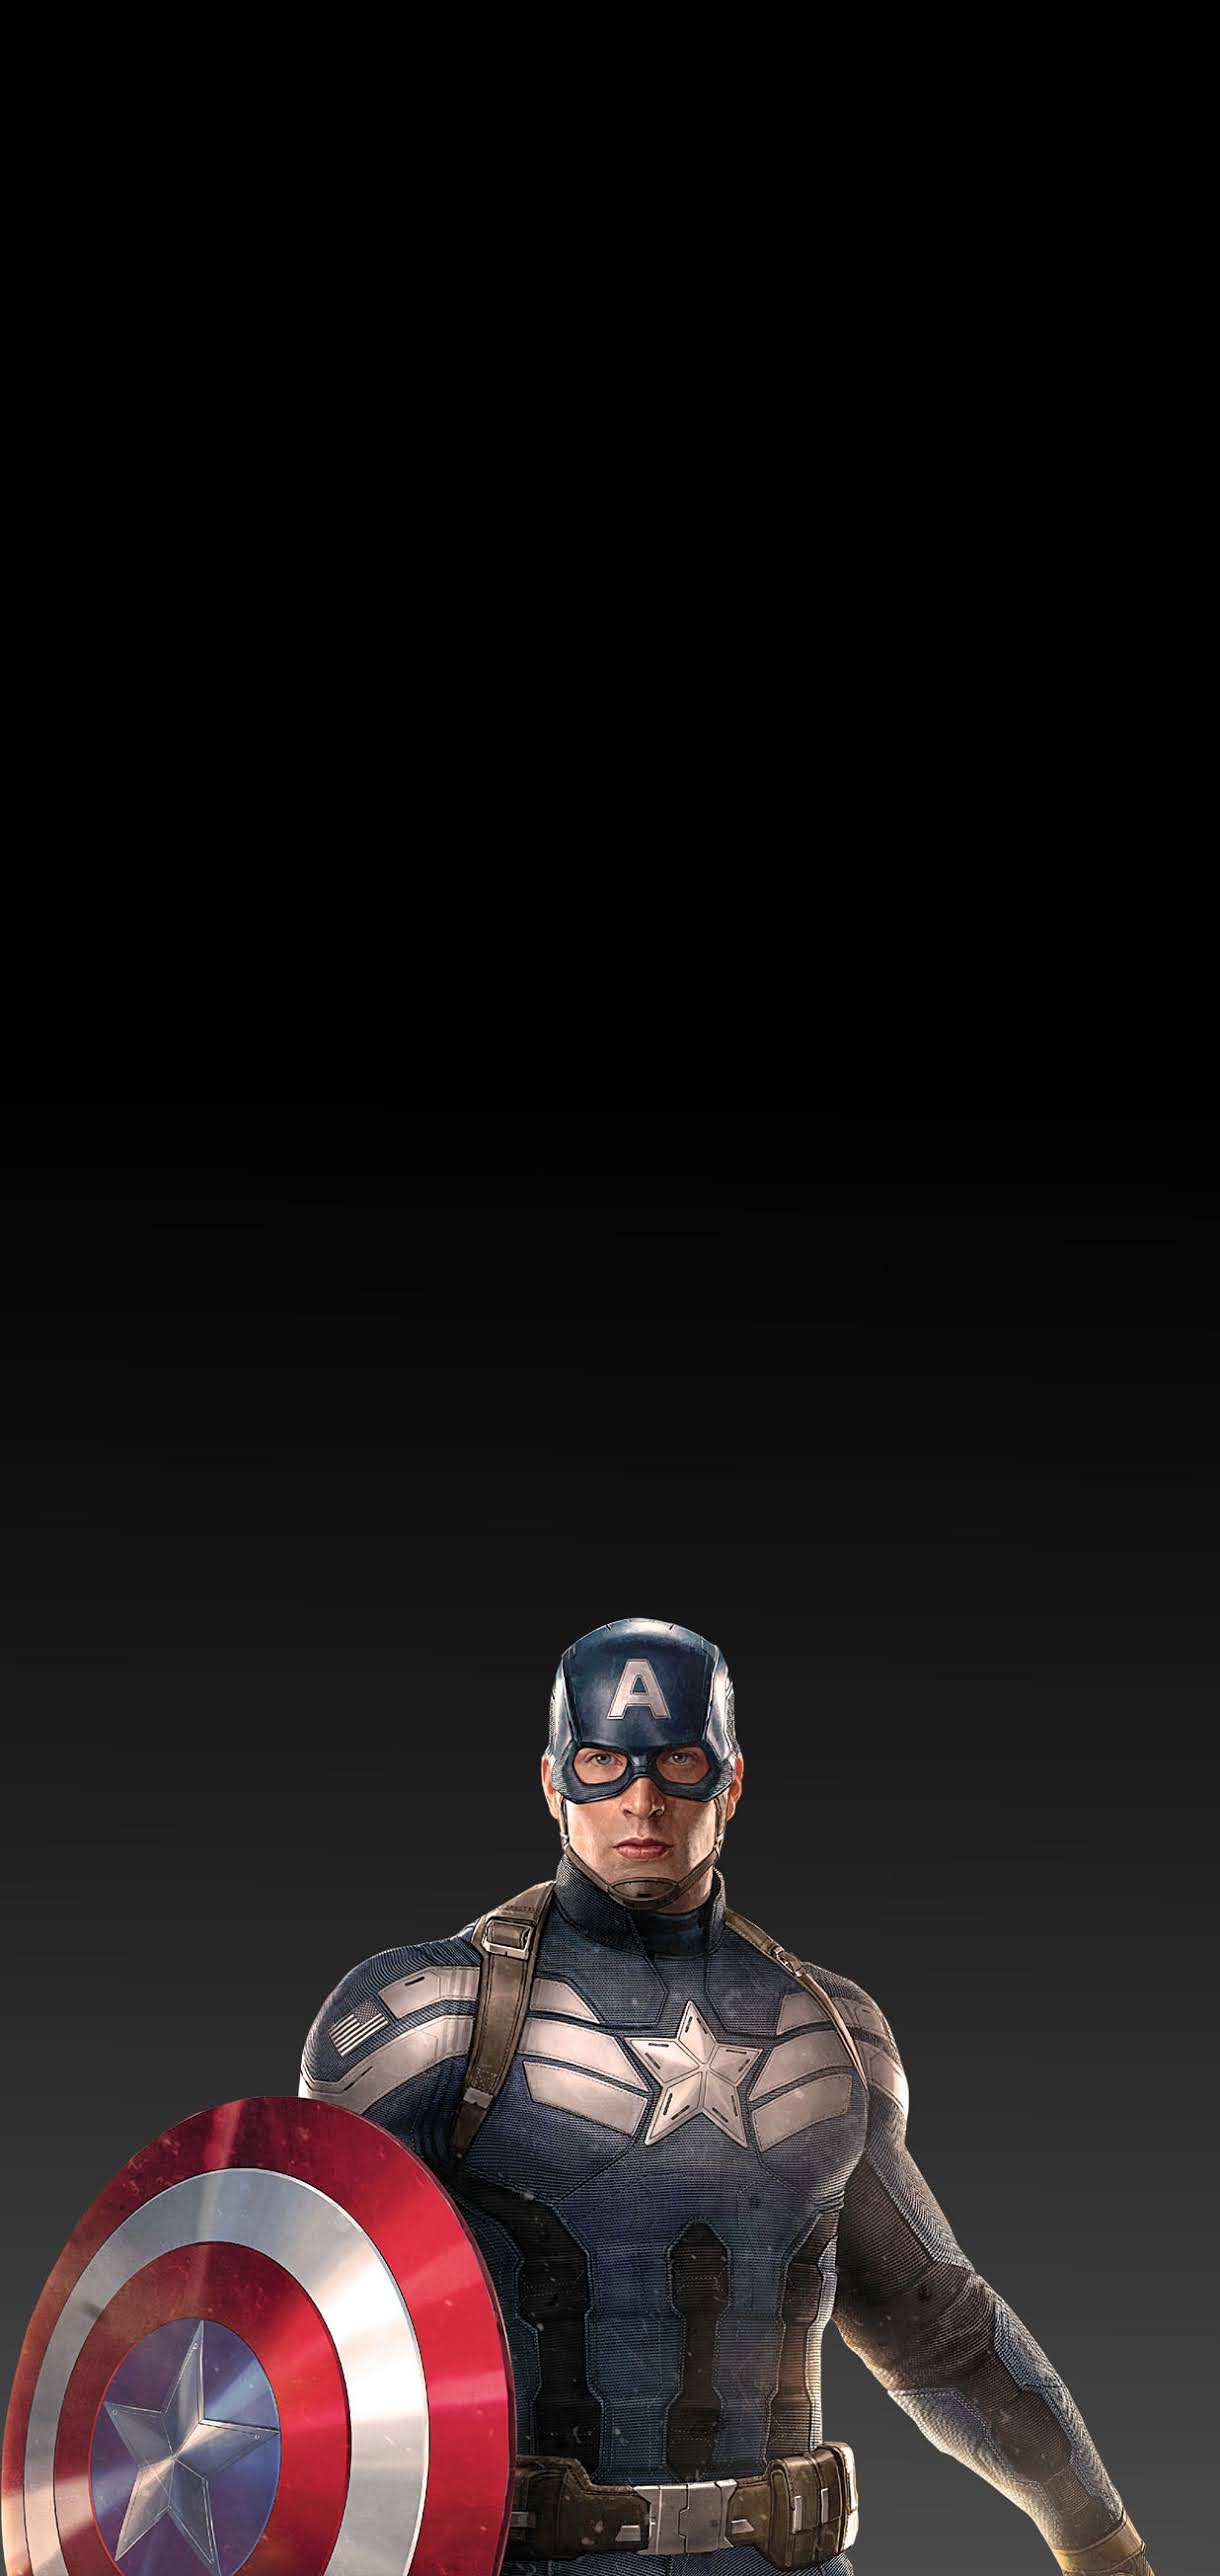 cris evans captain america with shield black wallpaper amoled